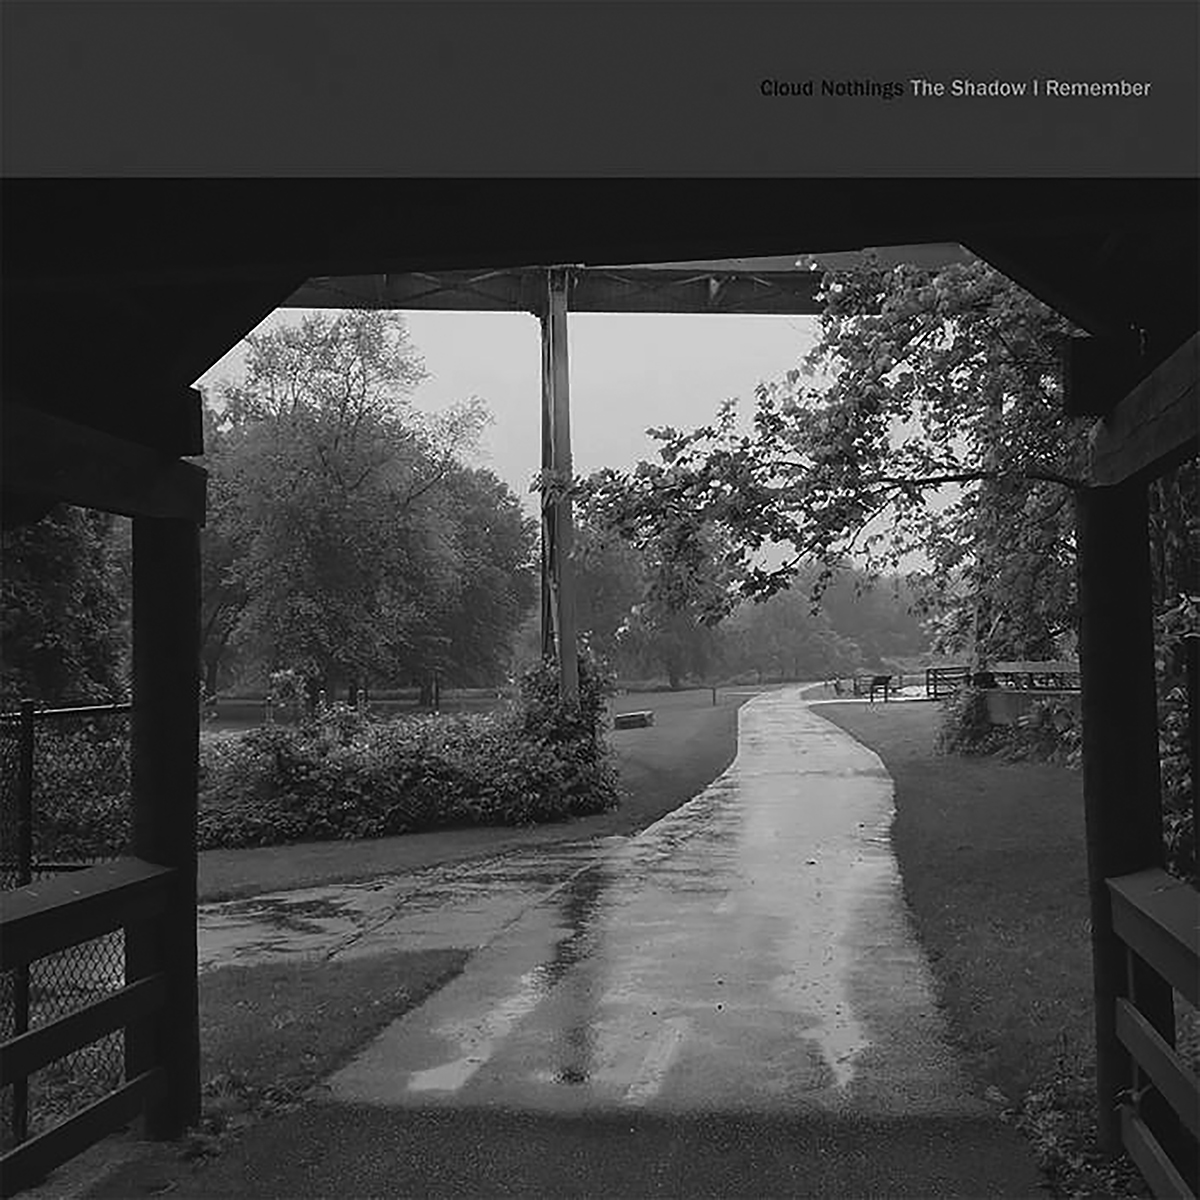 Album cover for The Shadow I Remember by Cloud Nothings. It's a black and white photo of a park. There's a covering and a sidewalk leading from under it, and the ground is wet. There are bushes and trees on either side.